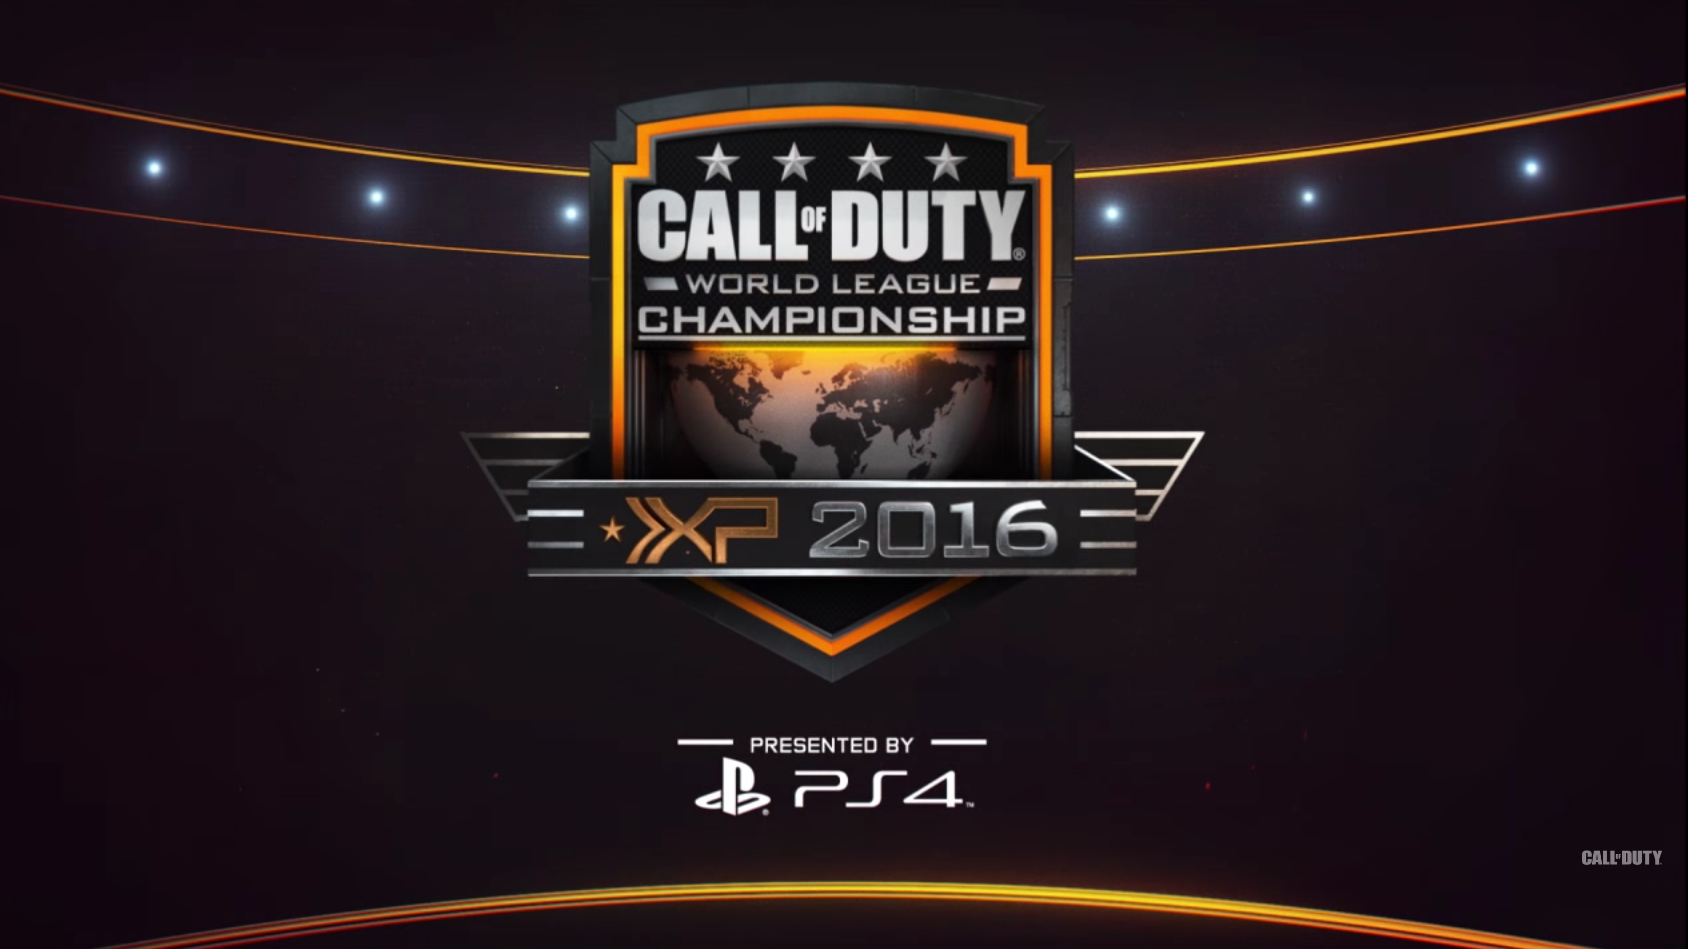 call of duty world league championship takes place this